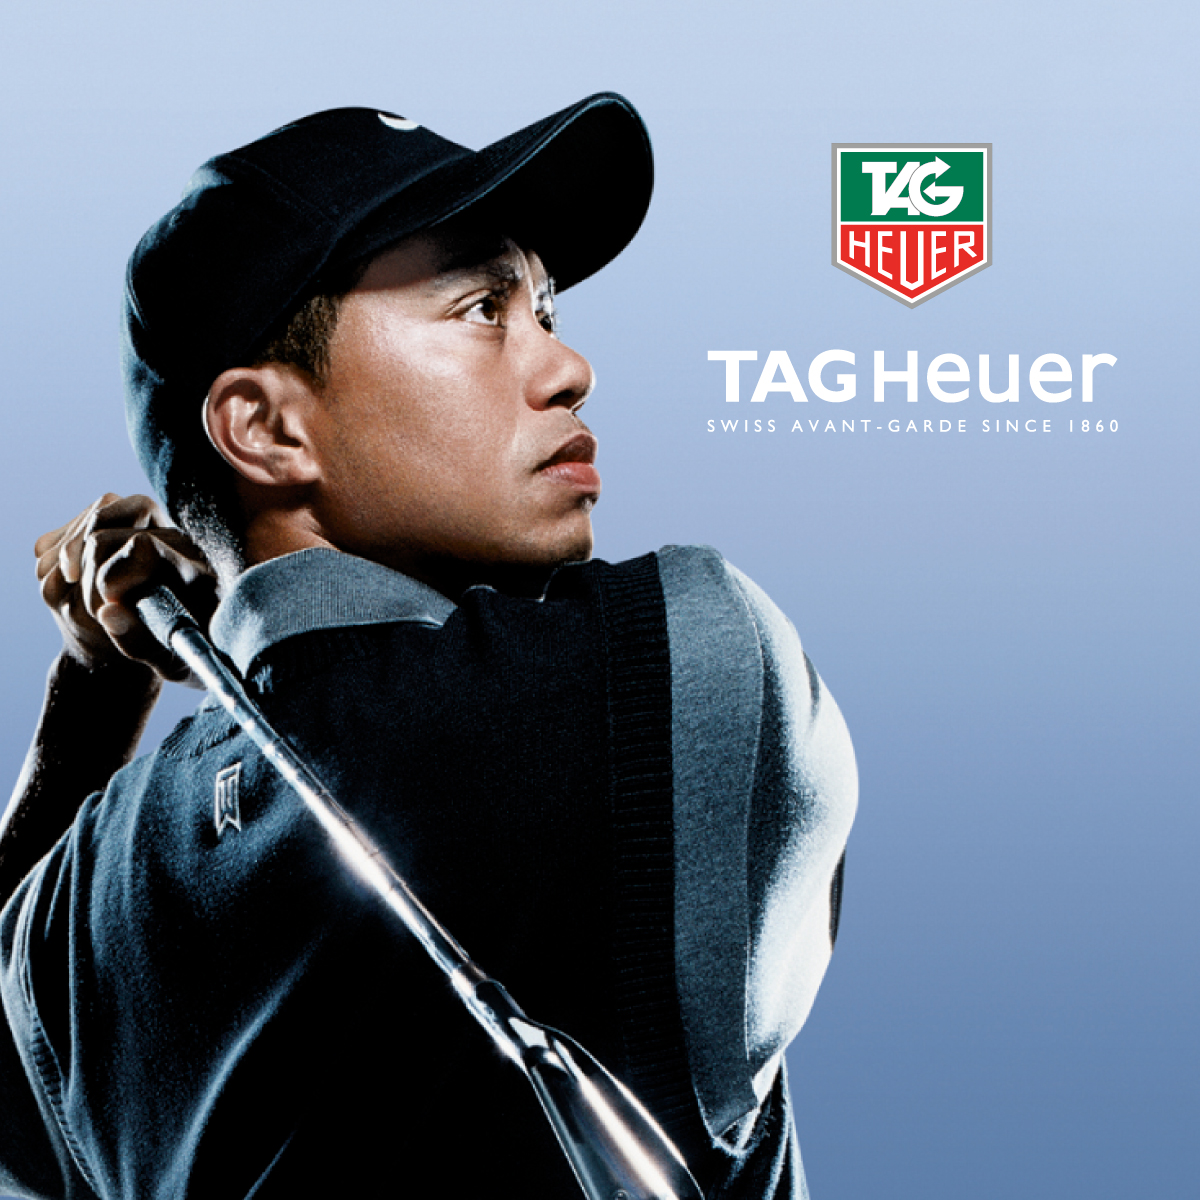 LVMH TAG Heuer Retail Design